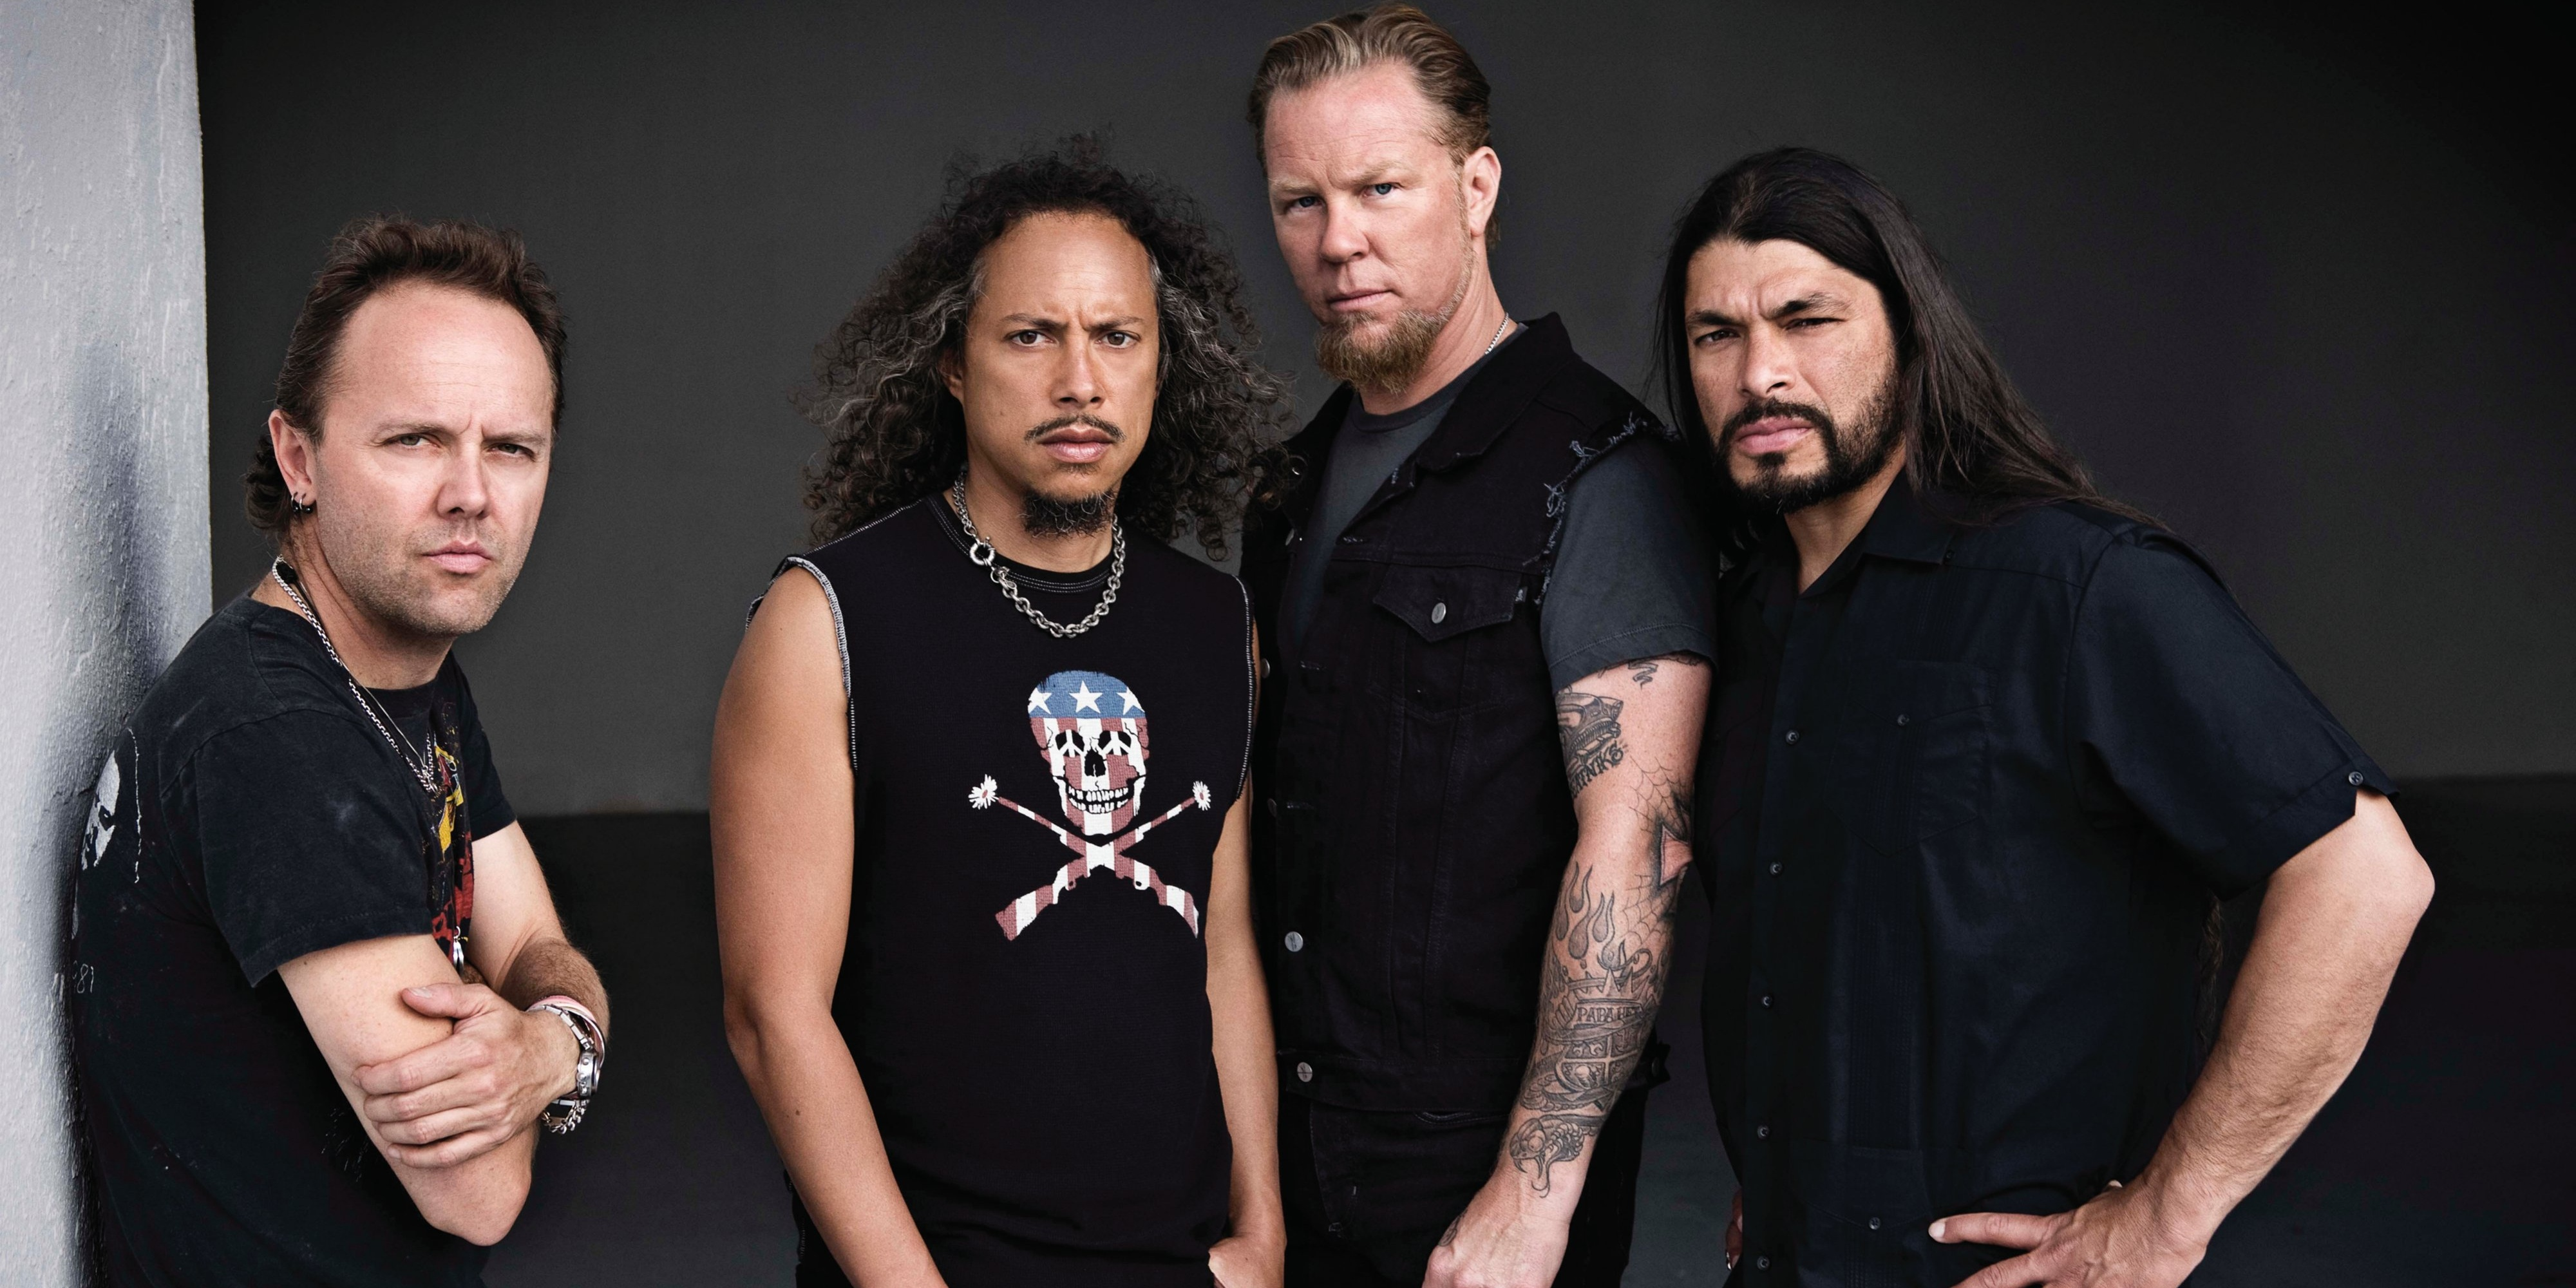 It's official: Metallica are set to return to Singapore in 2017